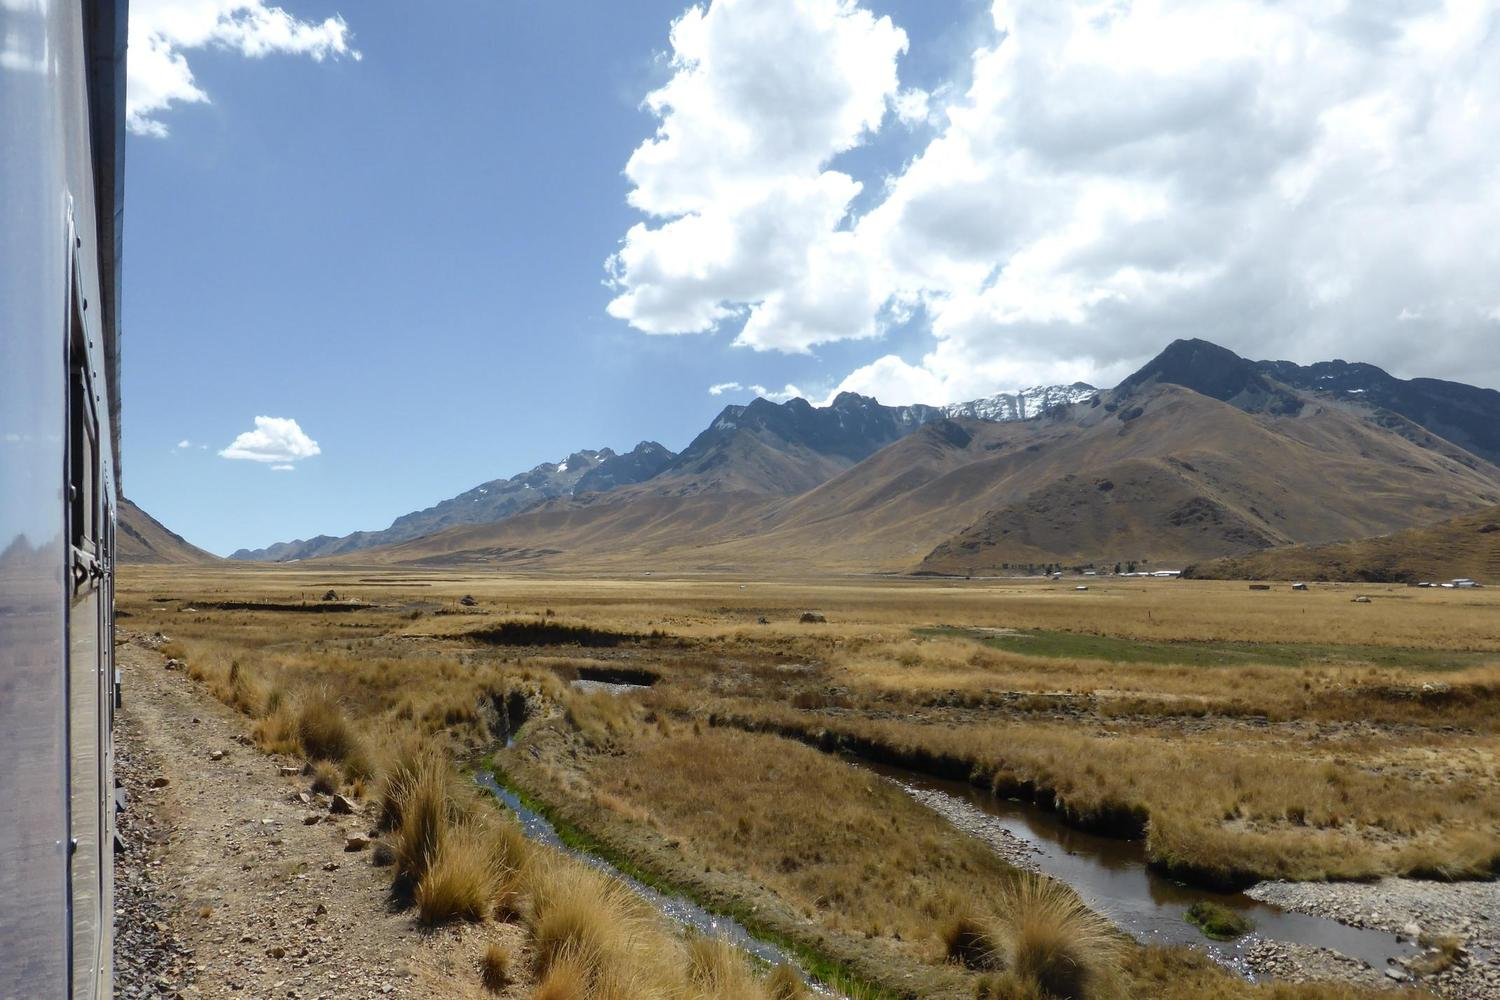 The Andean Explorer train from Cusco to Puno